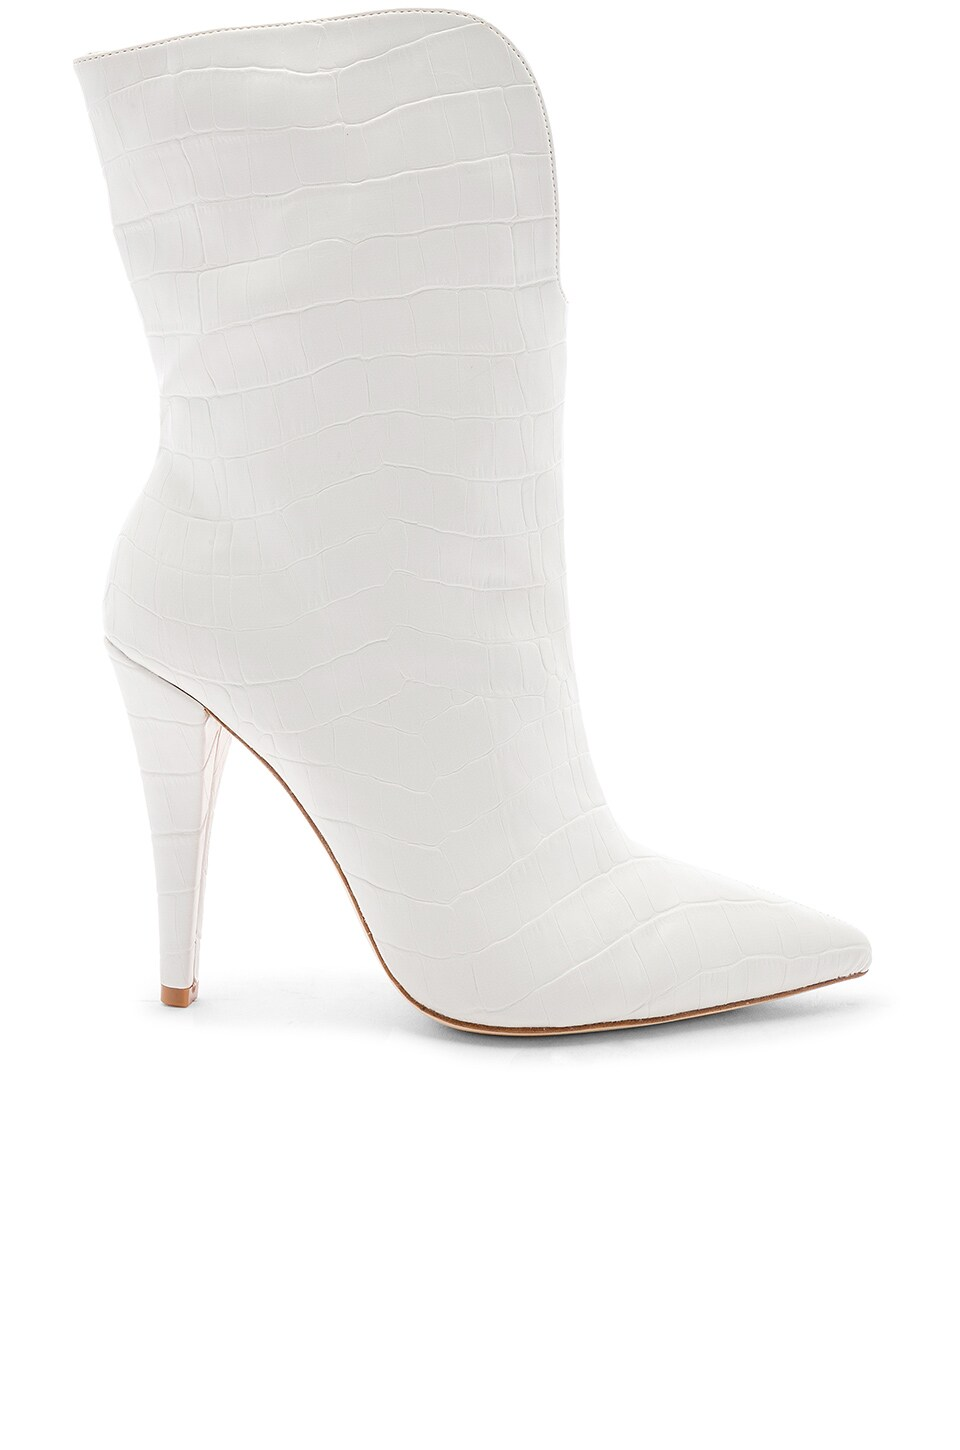 RAYE Austine Bootie in White